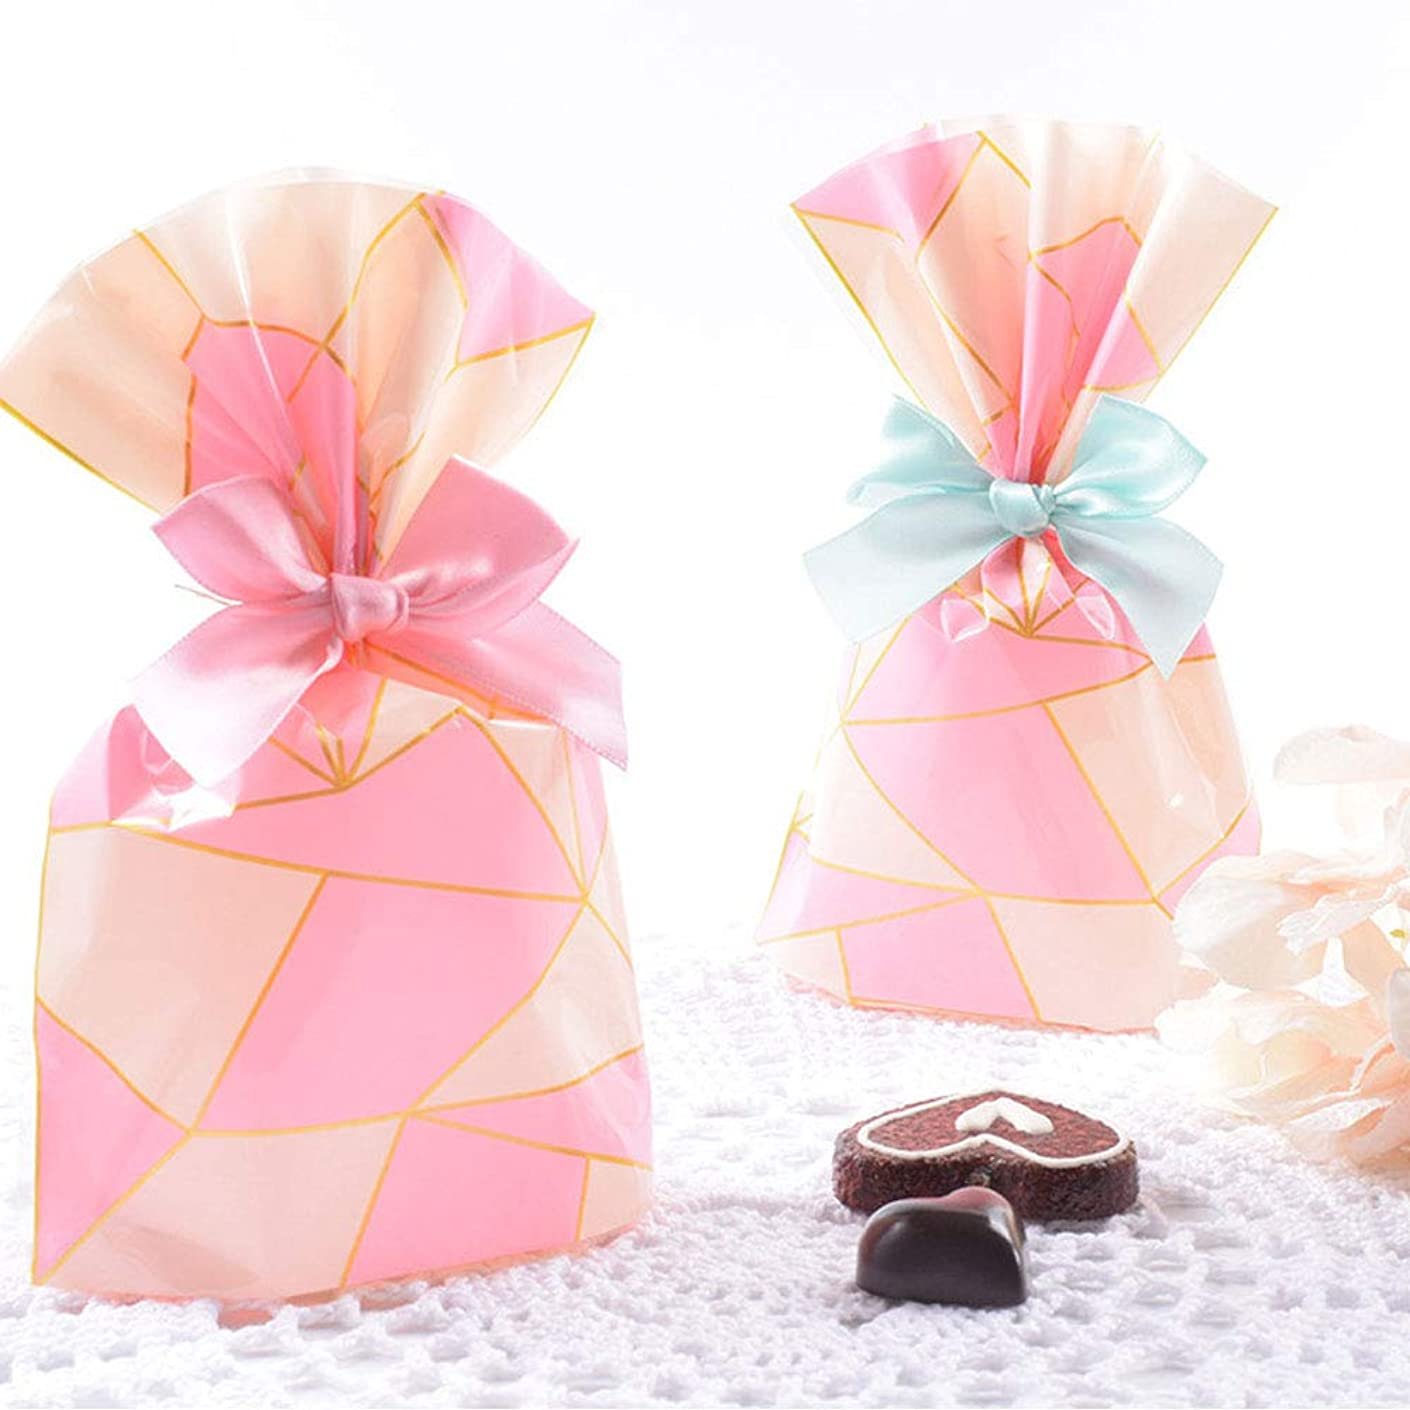 YESON Pink Lattice Clear Cello Bags Candy Plastic Favor cellophane Treat Bags,Pack of 50